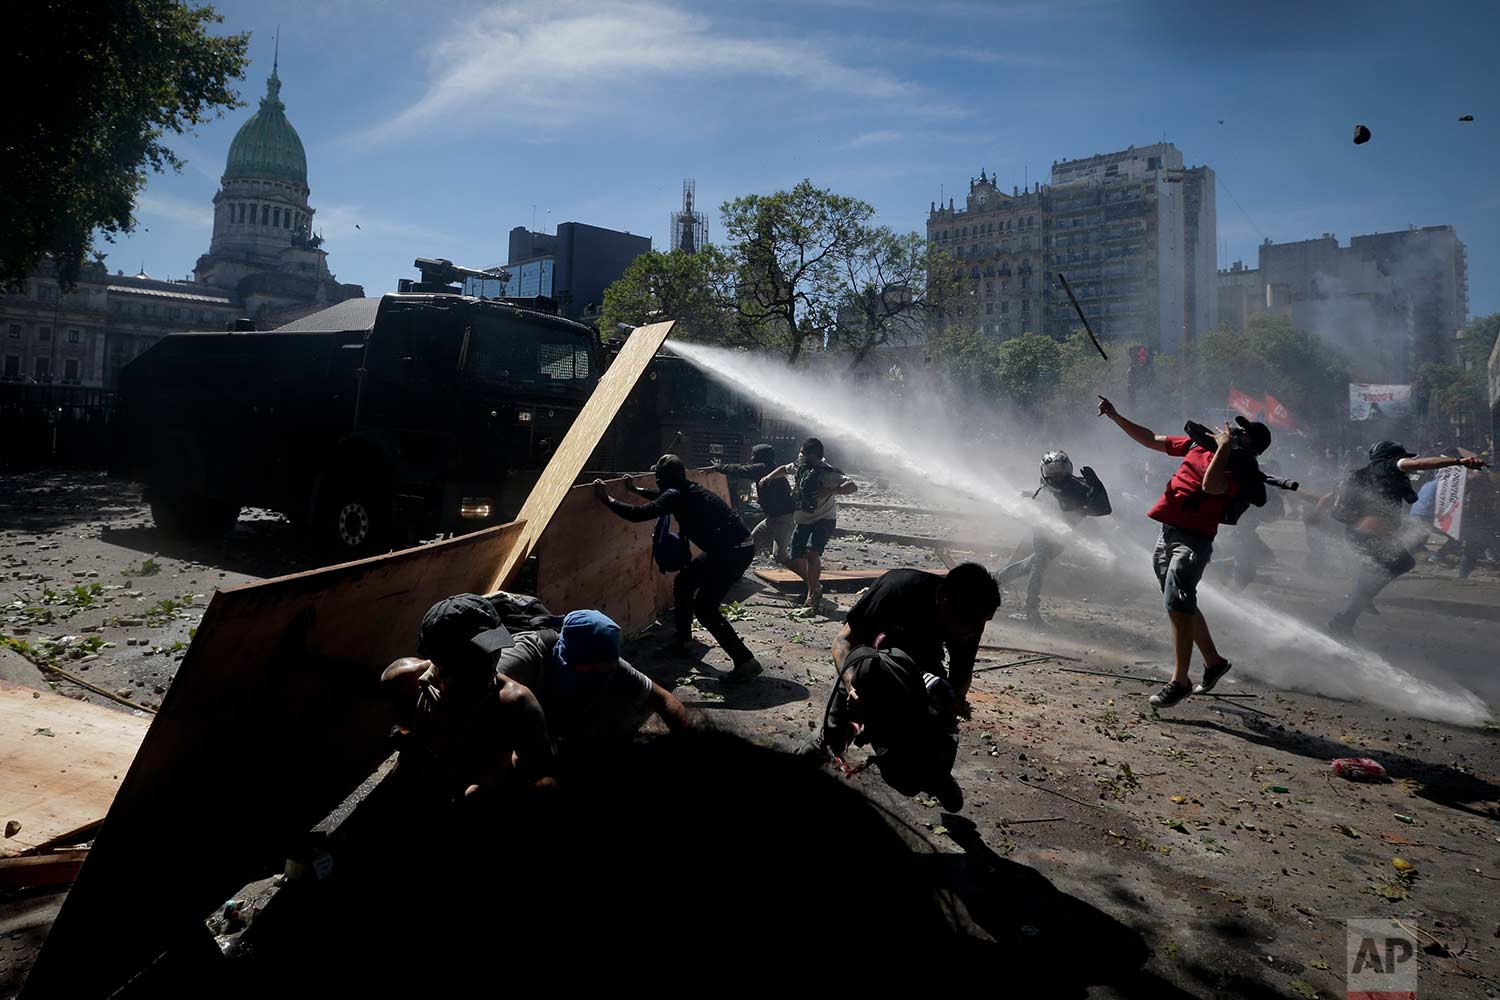 In this Monday, Dec. 18, 2017 photo, protesters clash with police during a general strike against a pension reform measure, outside Congress in Buenos Aires, Argentina.(AP Photo/Victor R. Caivano)